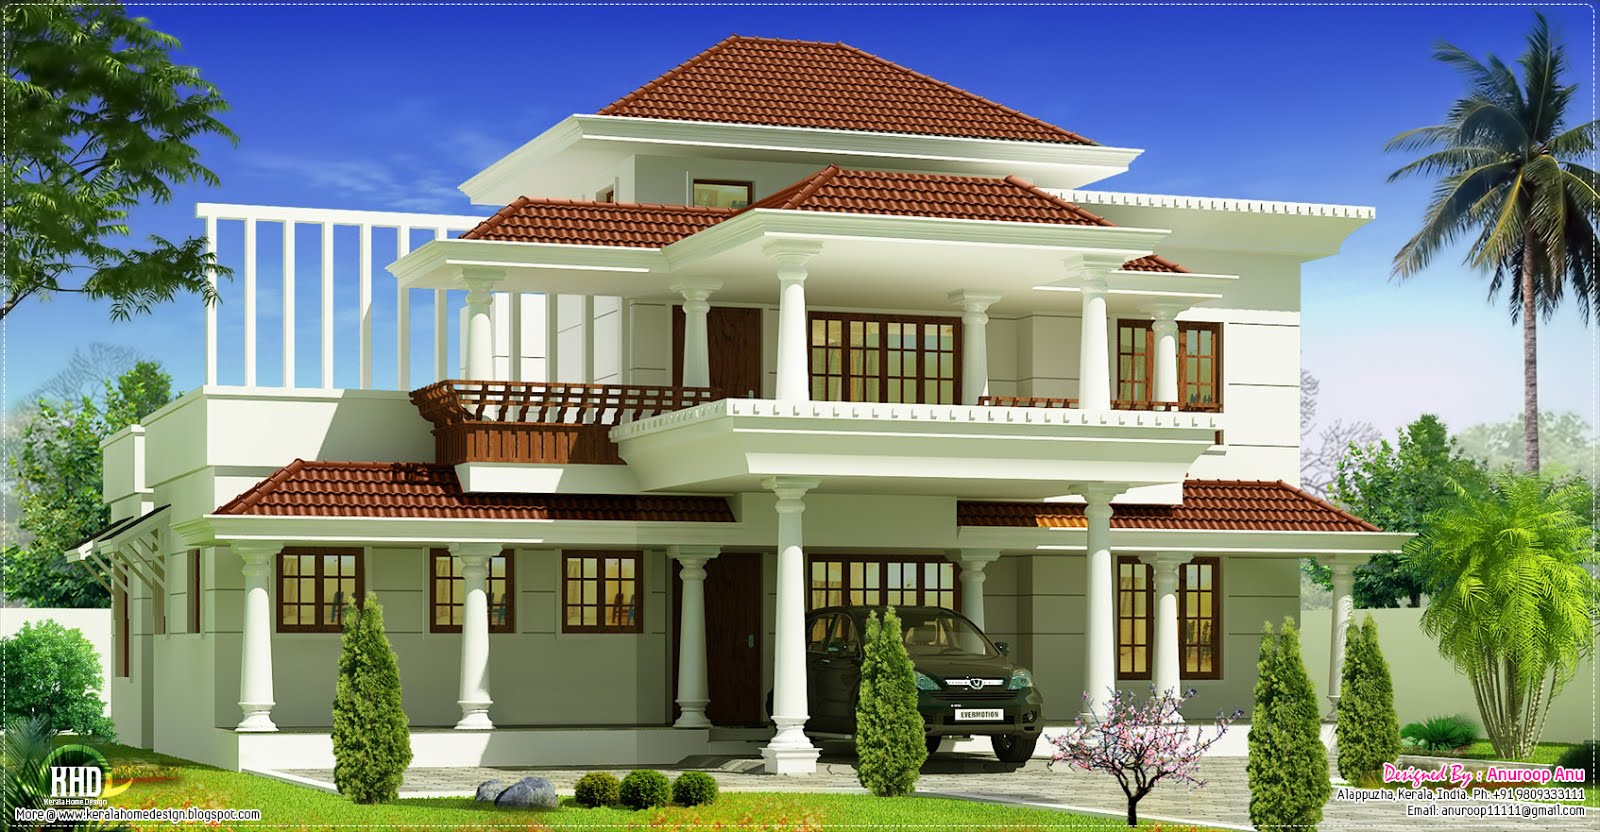 Kerala house models houses plans designs for Best home designs 2013